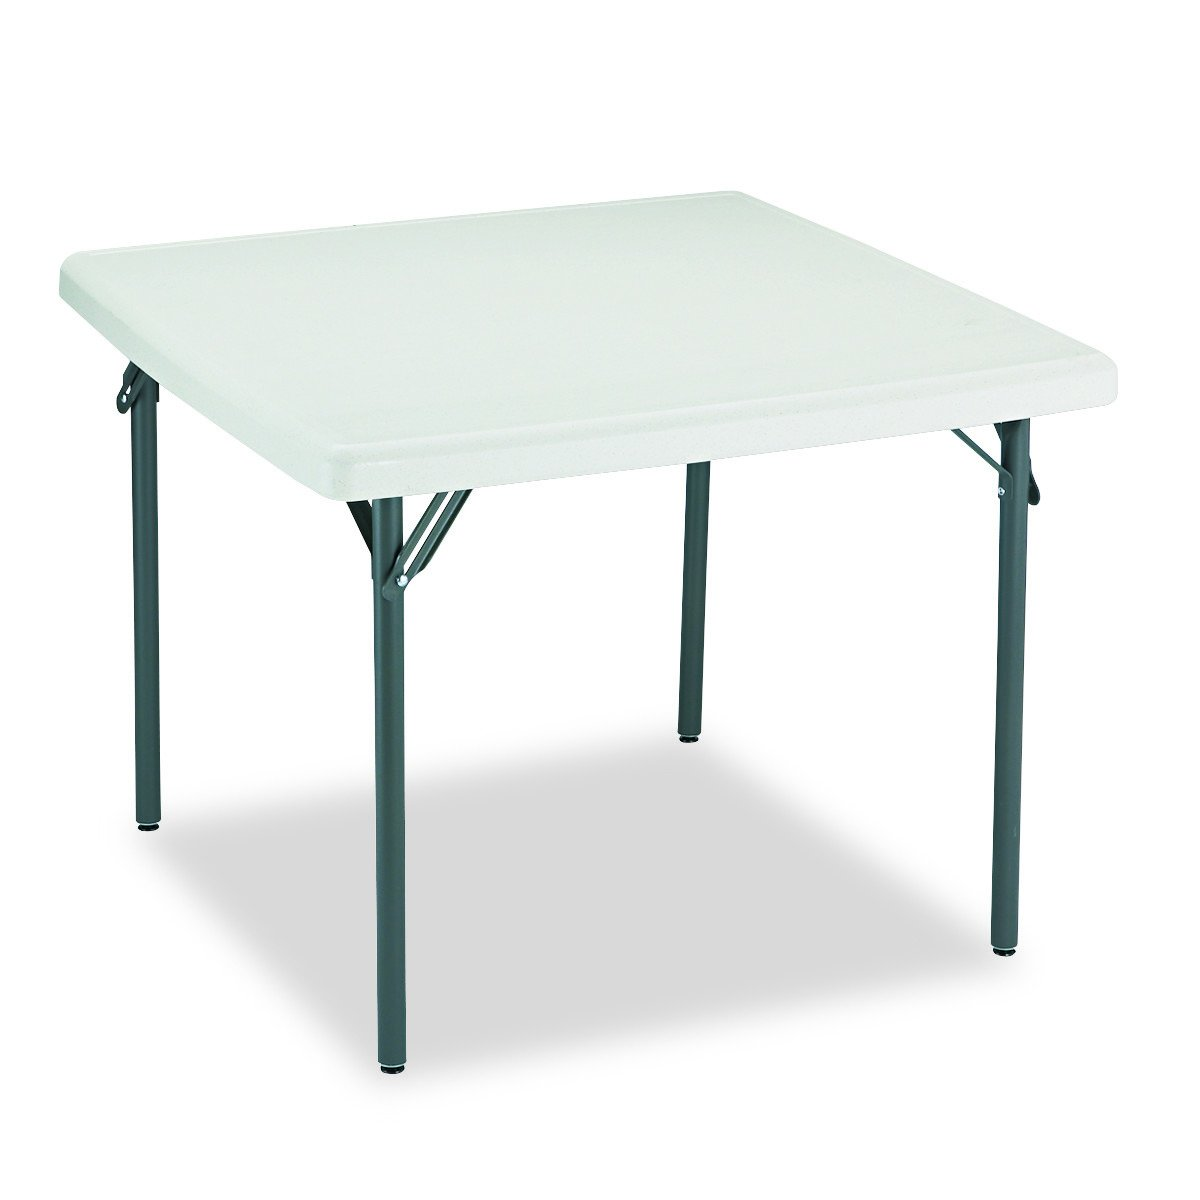 Iceberg 65273 IndestrucTable TOO Folding Table, 37'' Square, Platinum (Made in USA) by Iceberg